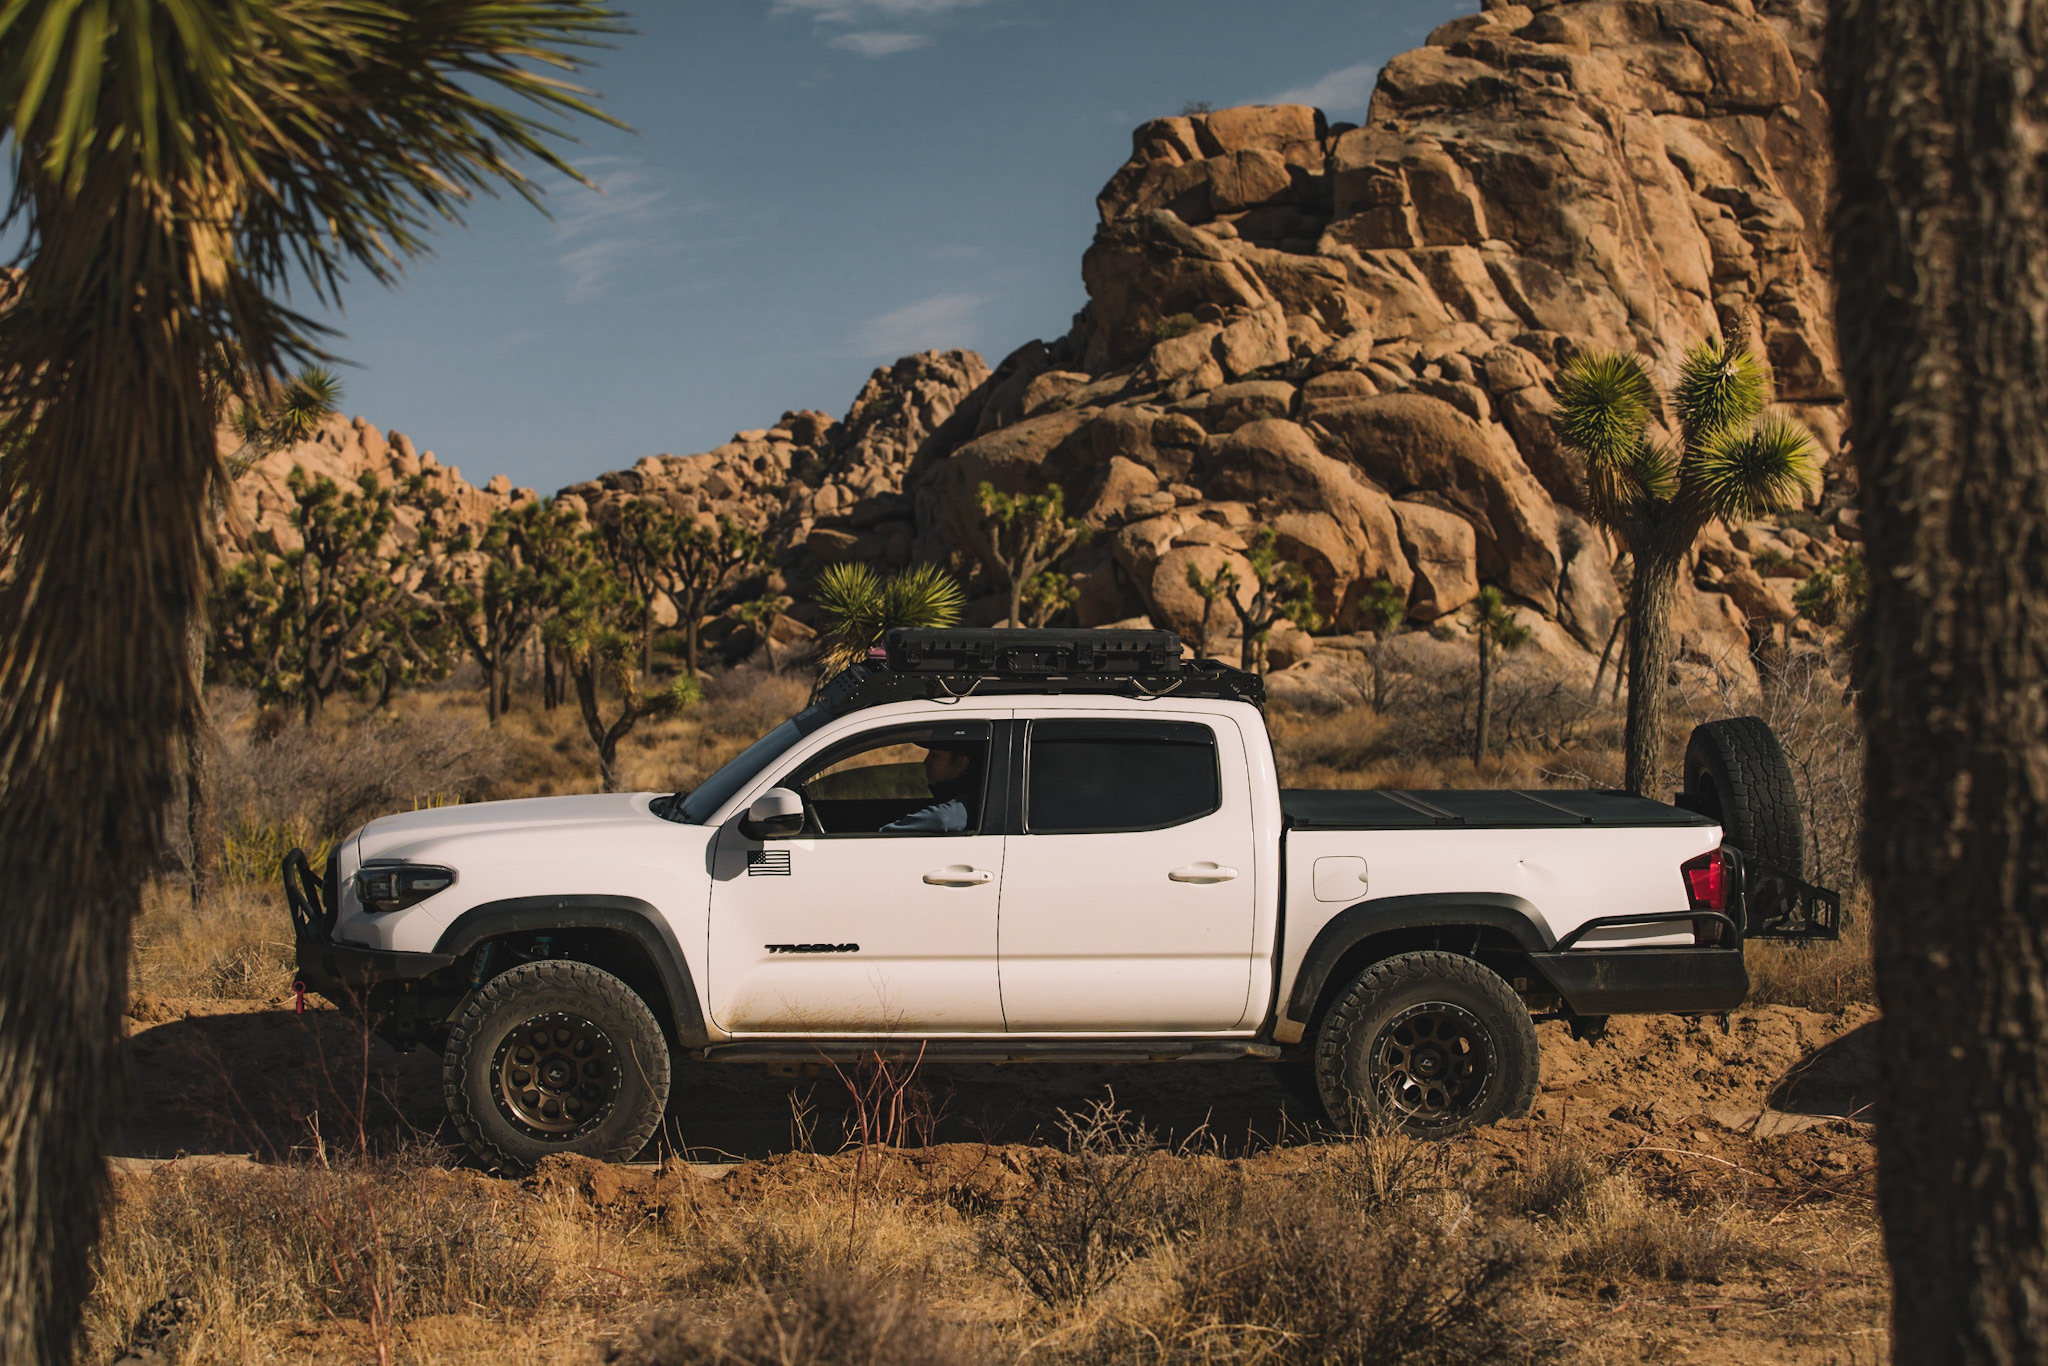 Lifted Super White 3rd Gen Tacoma with Brute Force Fabrication Front & Rear Bumpers